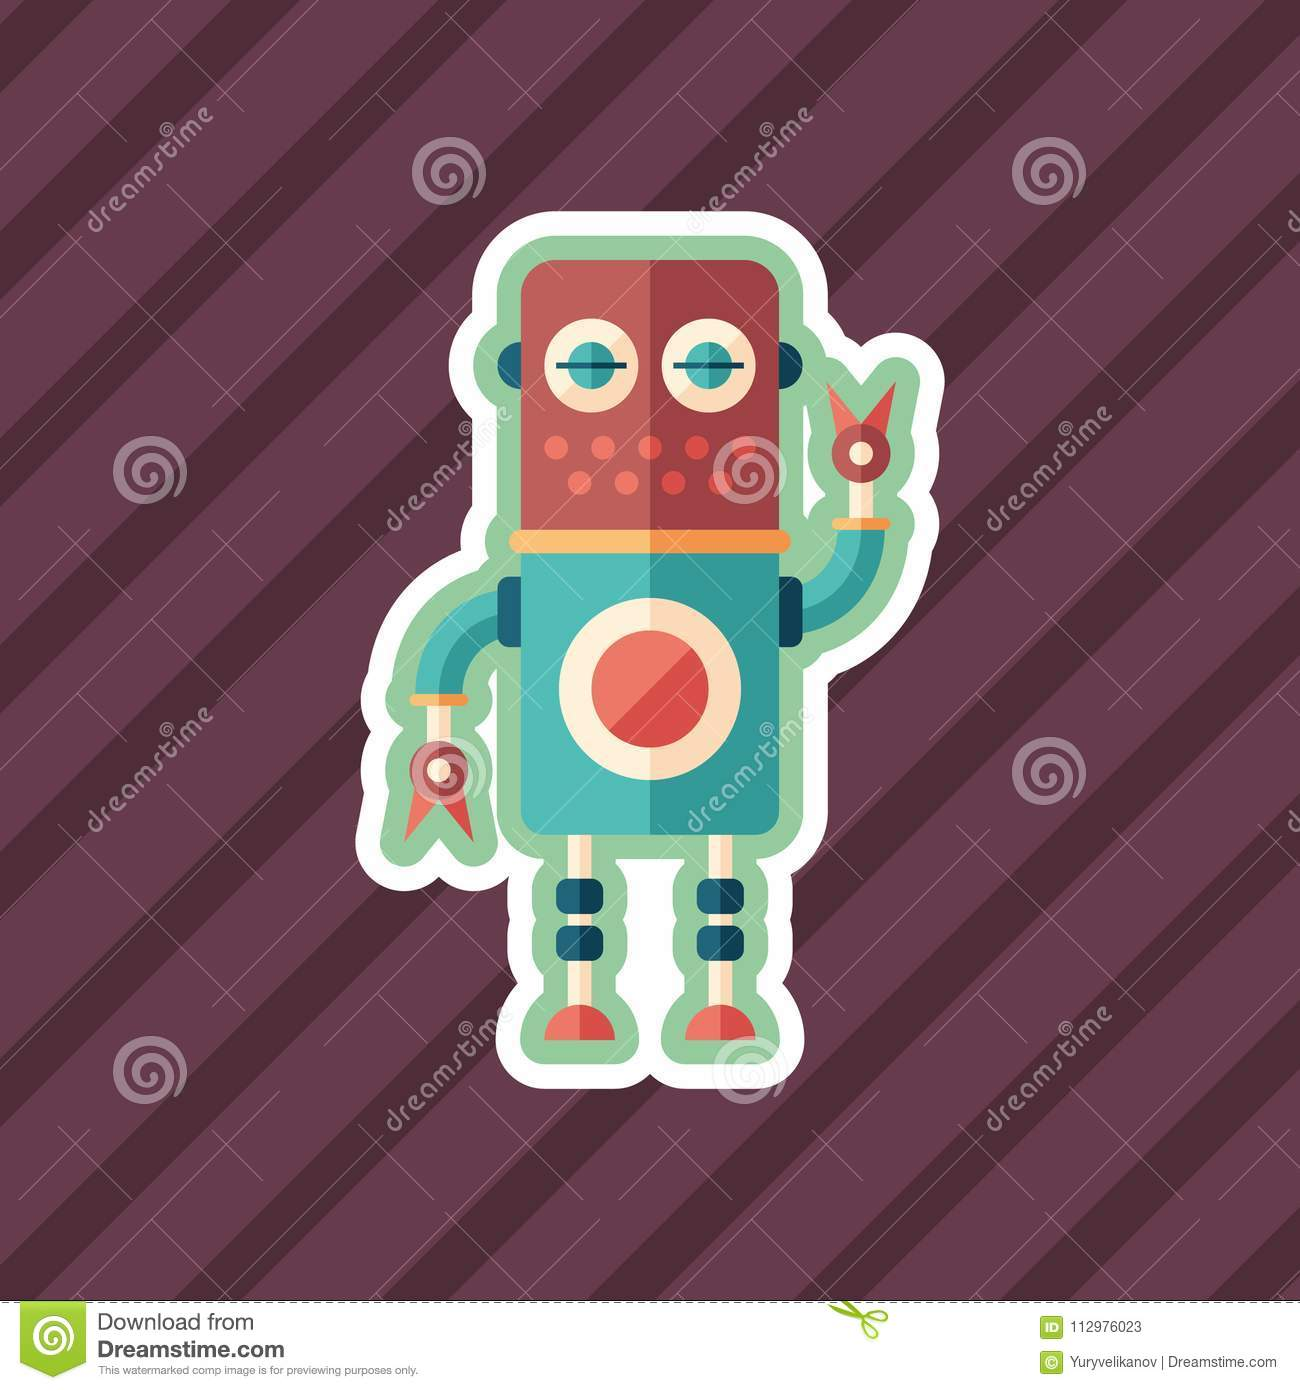 Robot mechanic sticker flat icon with color background.